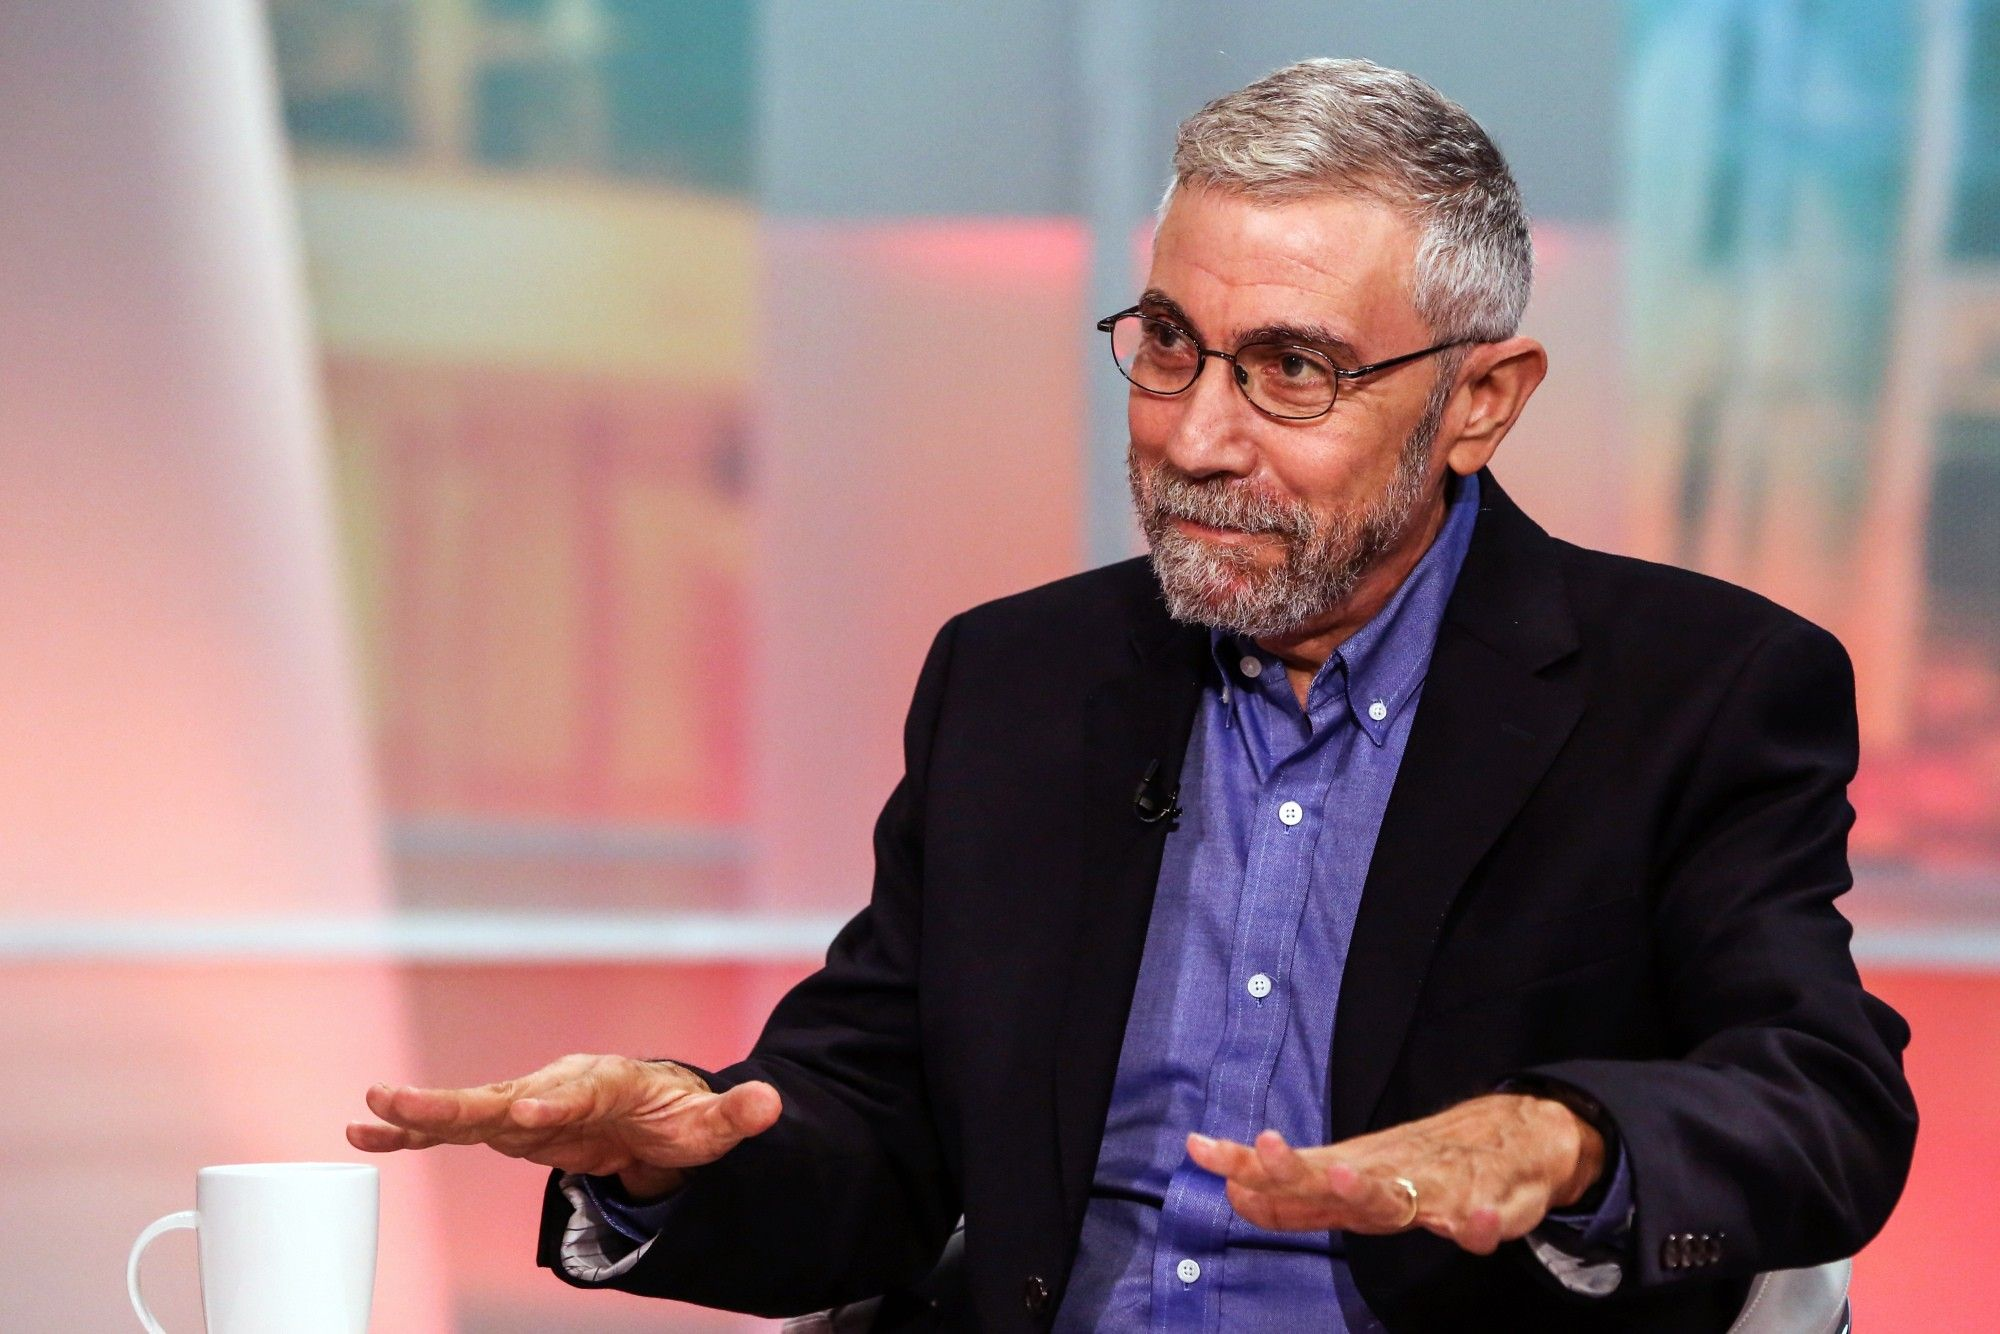 City University Of New York Economics Professor Paul Krugman Interview